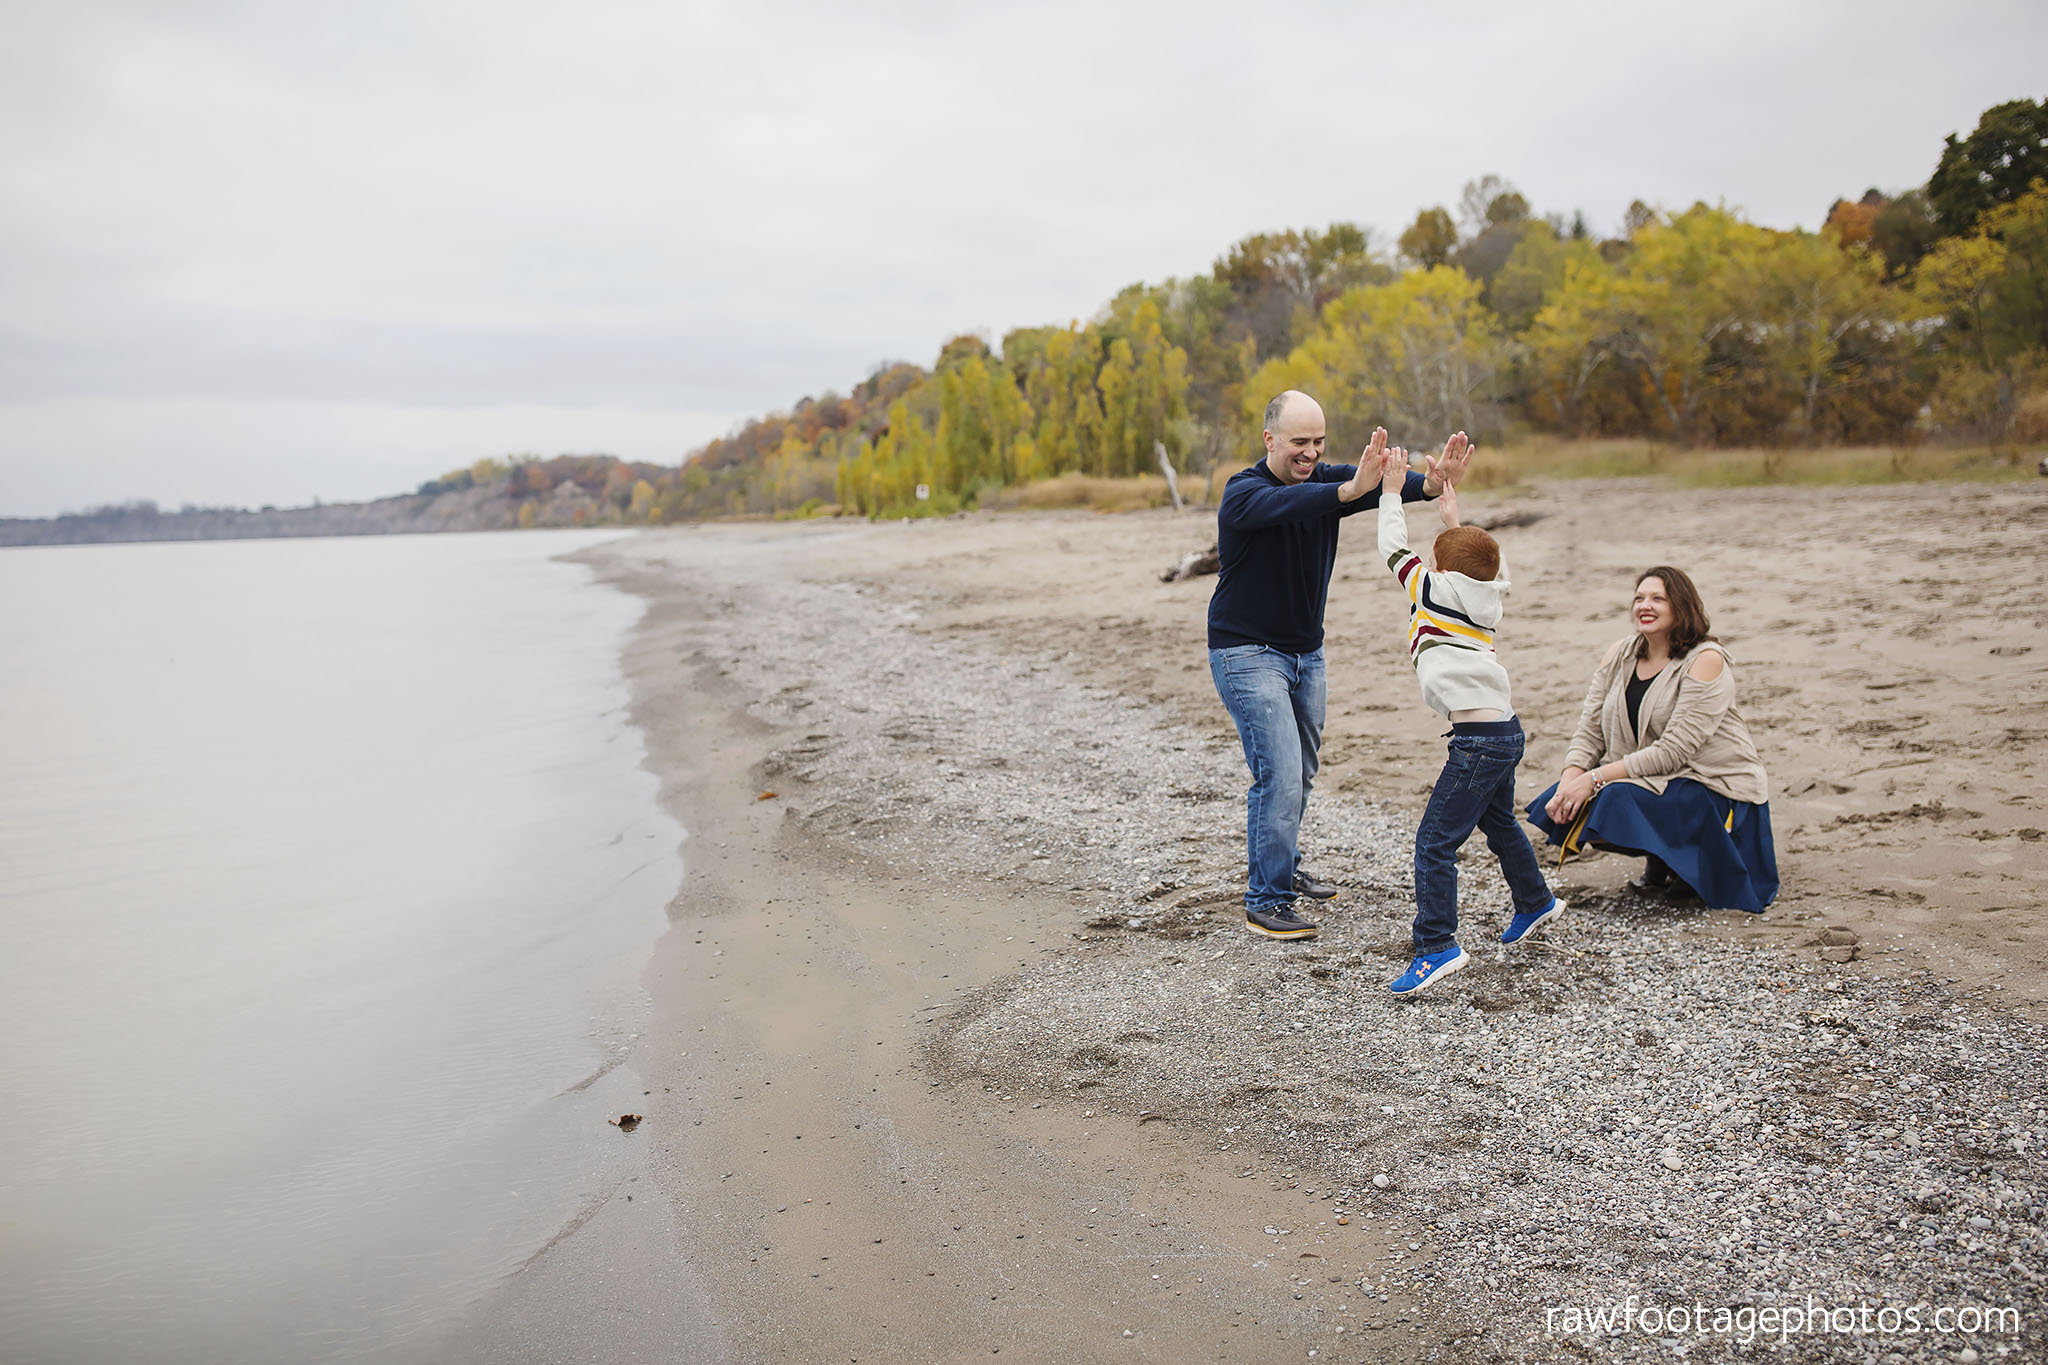 london_ontario_family_photographer-port_stanley_photography-raw_footage_photography-family_photos-beach_photos-fall_family_photos-lifestyle_family_photography-candid_photographer022.jpg